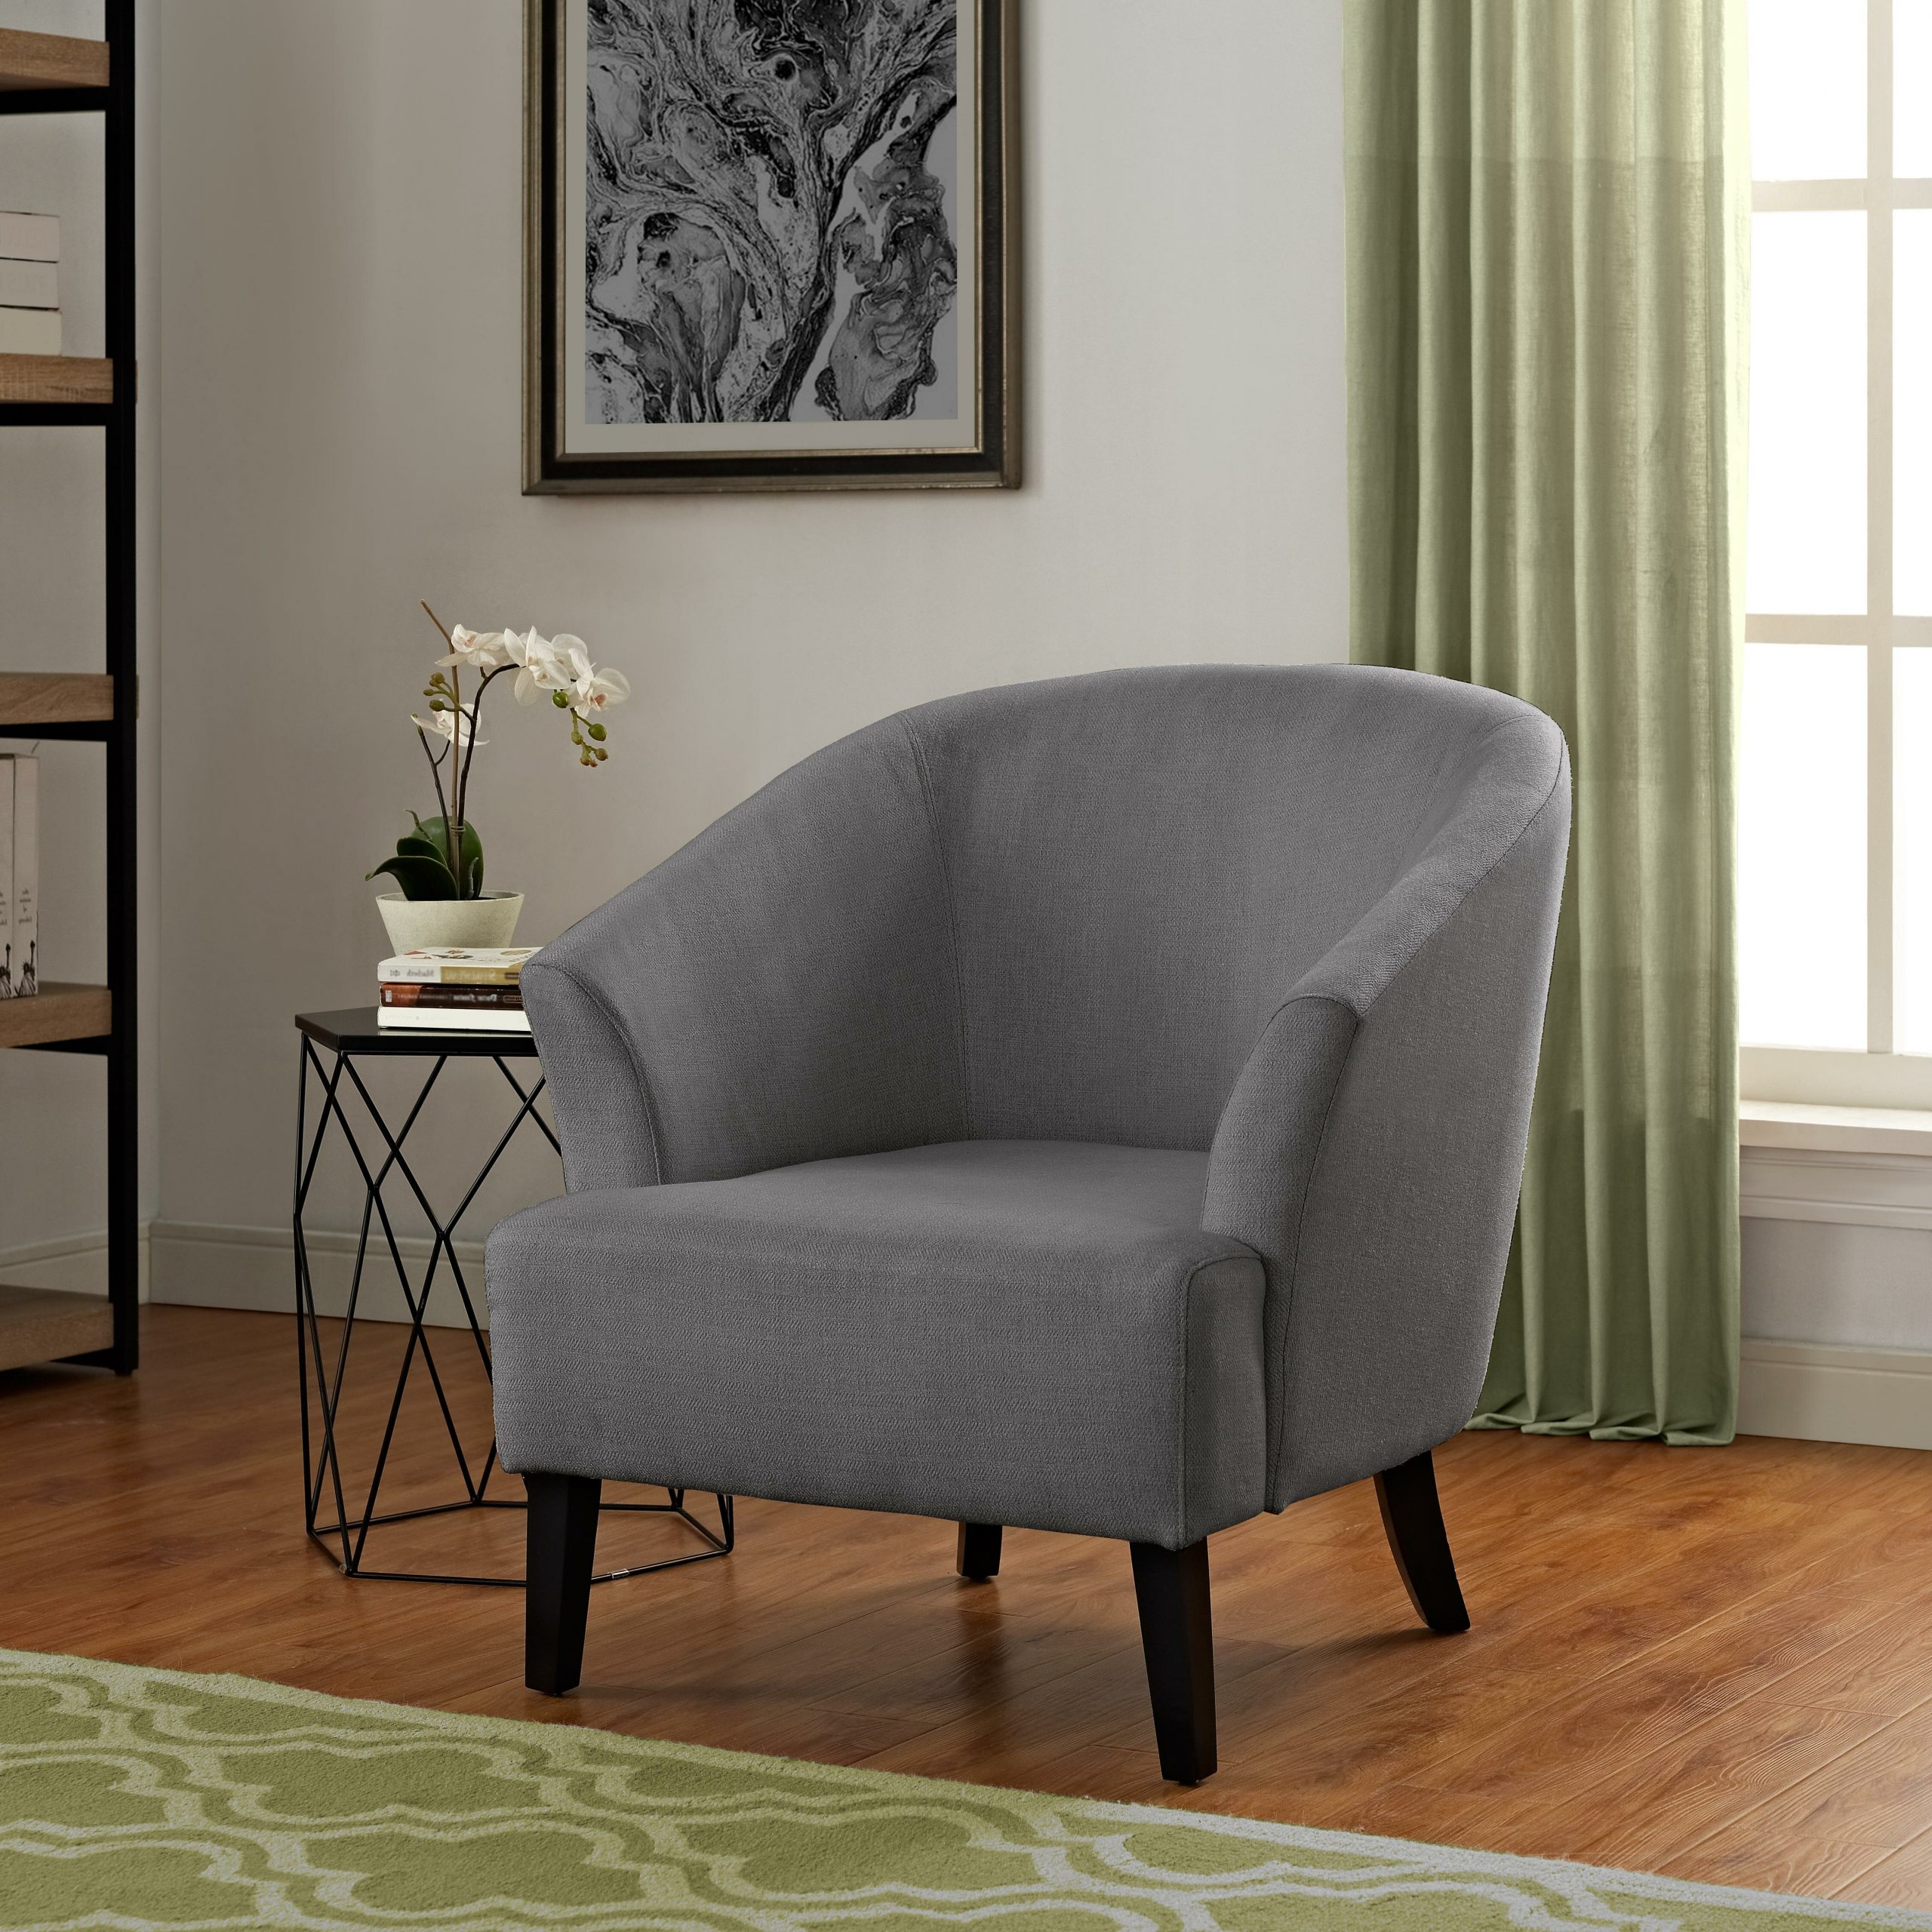 Artesia Barrel Chair Pertaining To Navin Barrel Chairs (View 9 of 15)